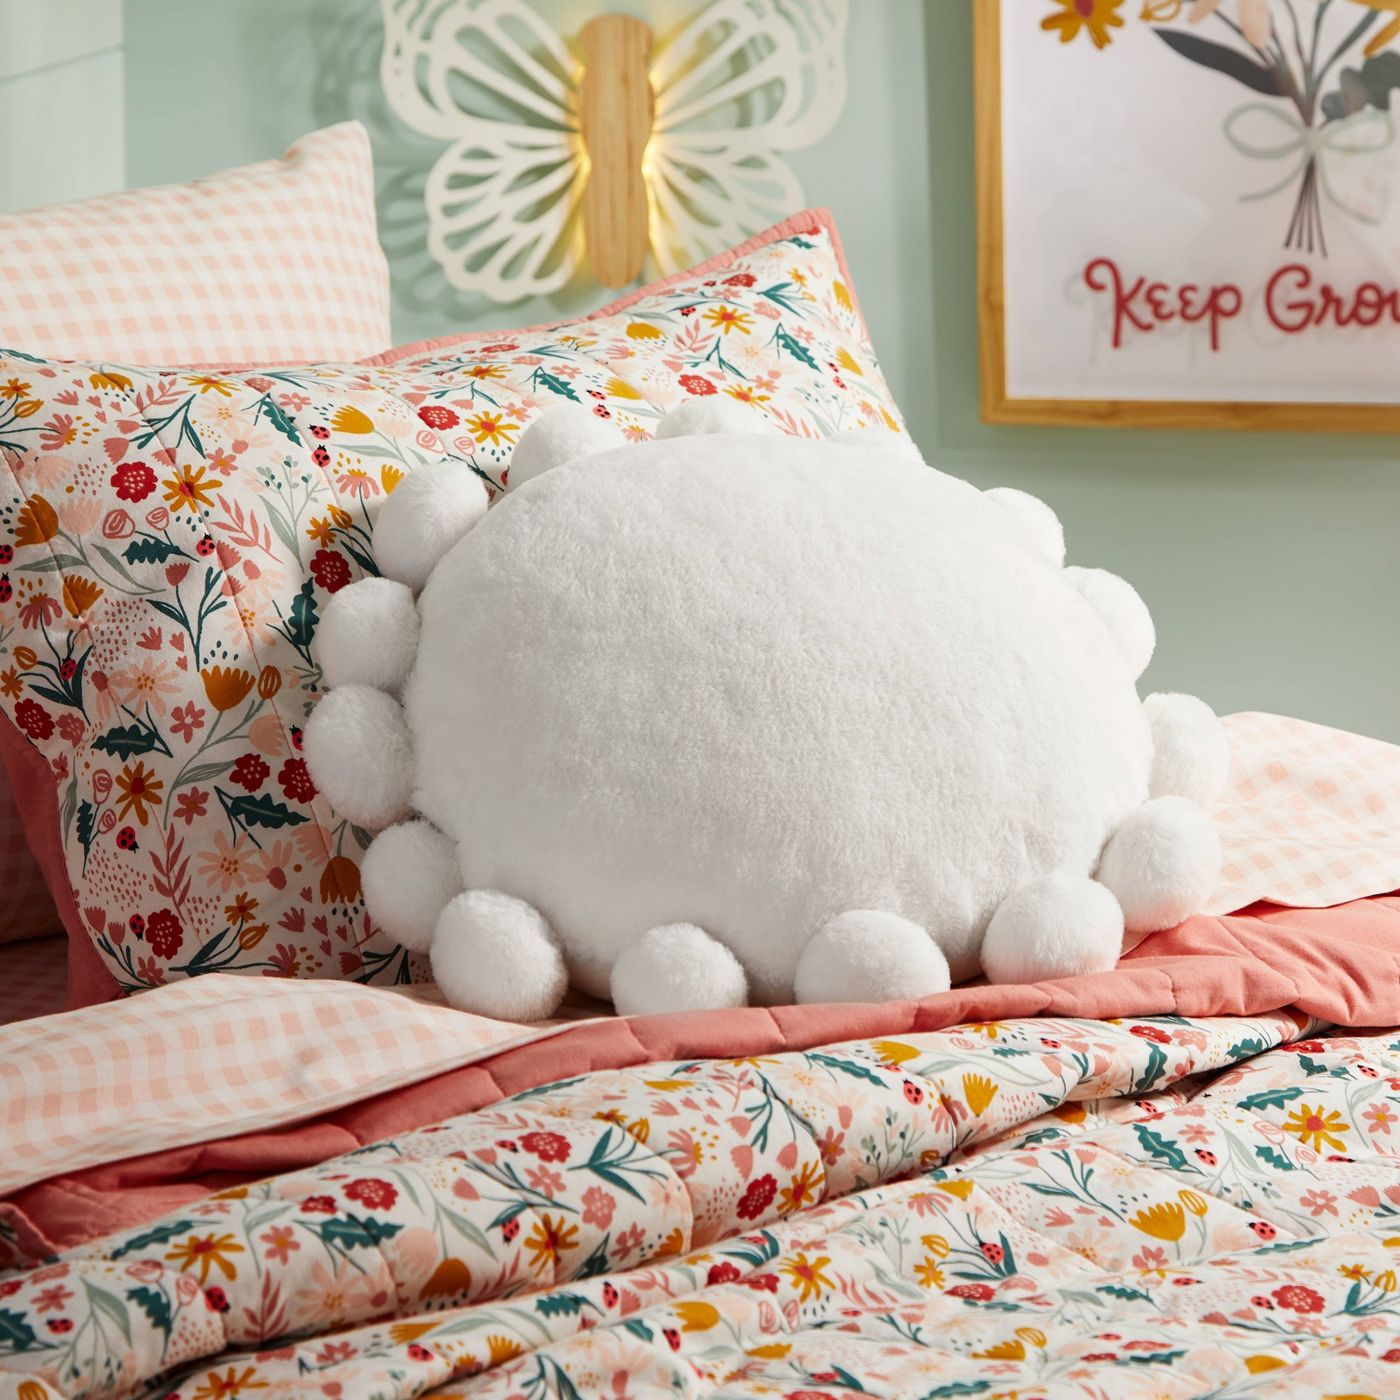 Pillowfort Round Plush Pillow with Poms-Poms on a pillow as summer accessories